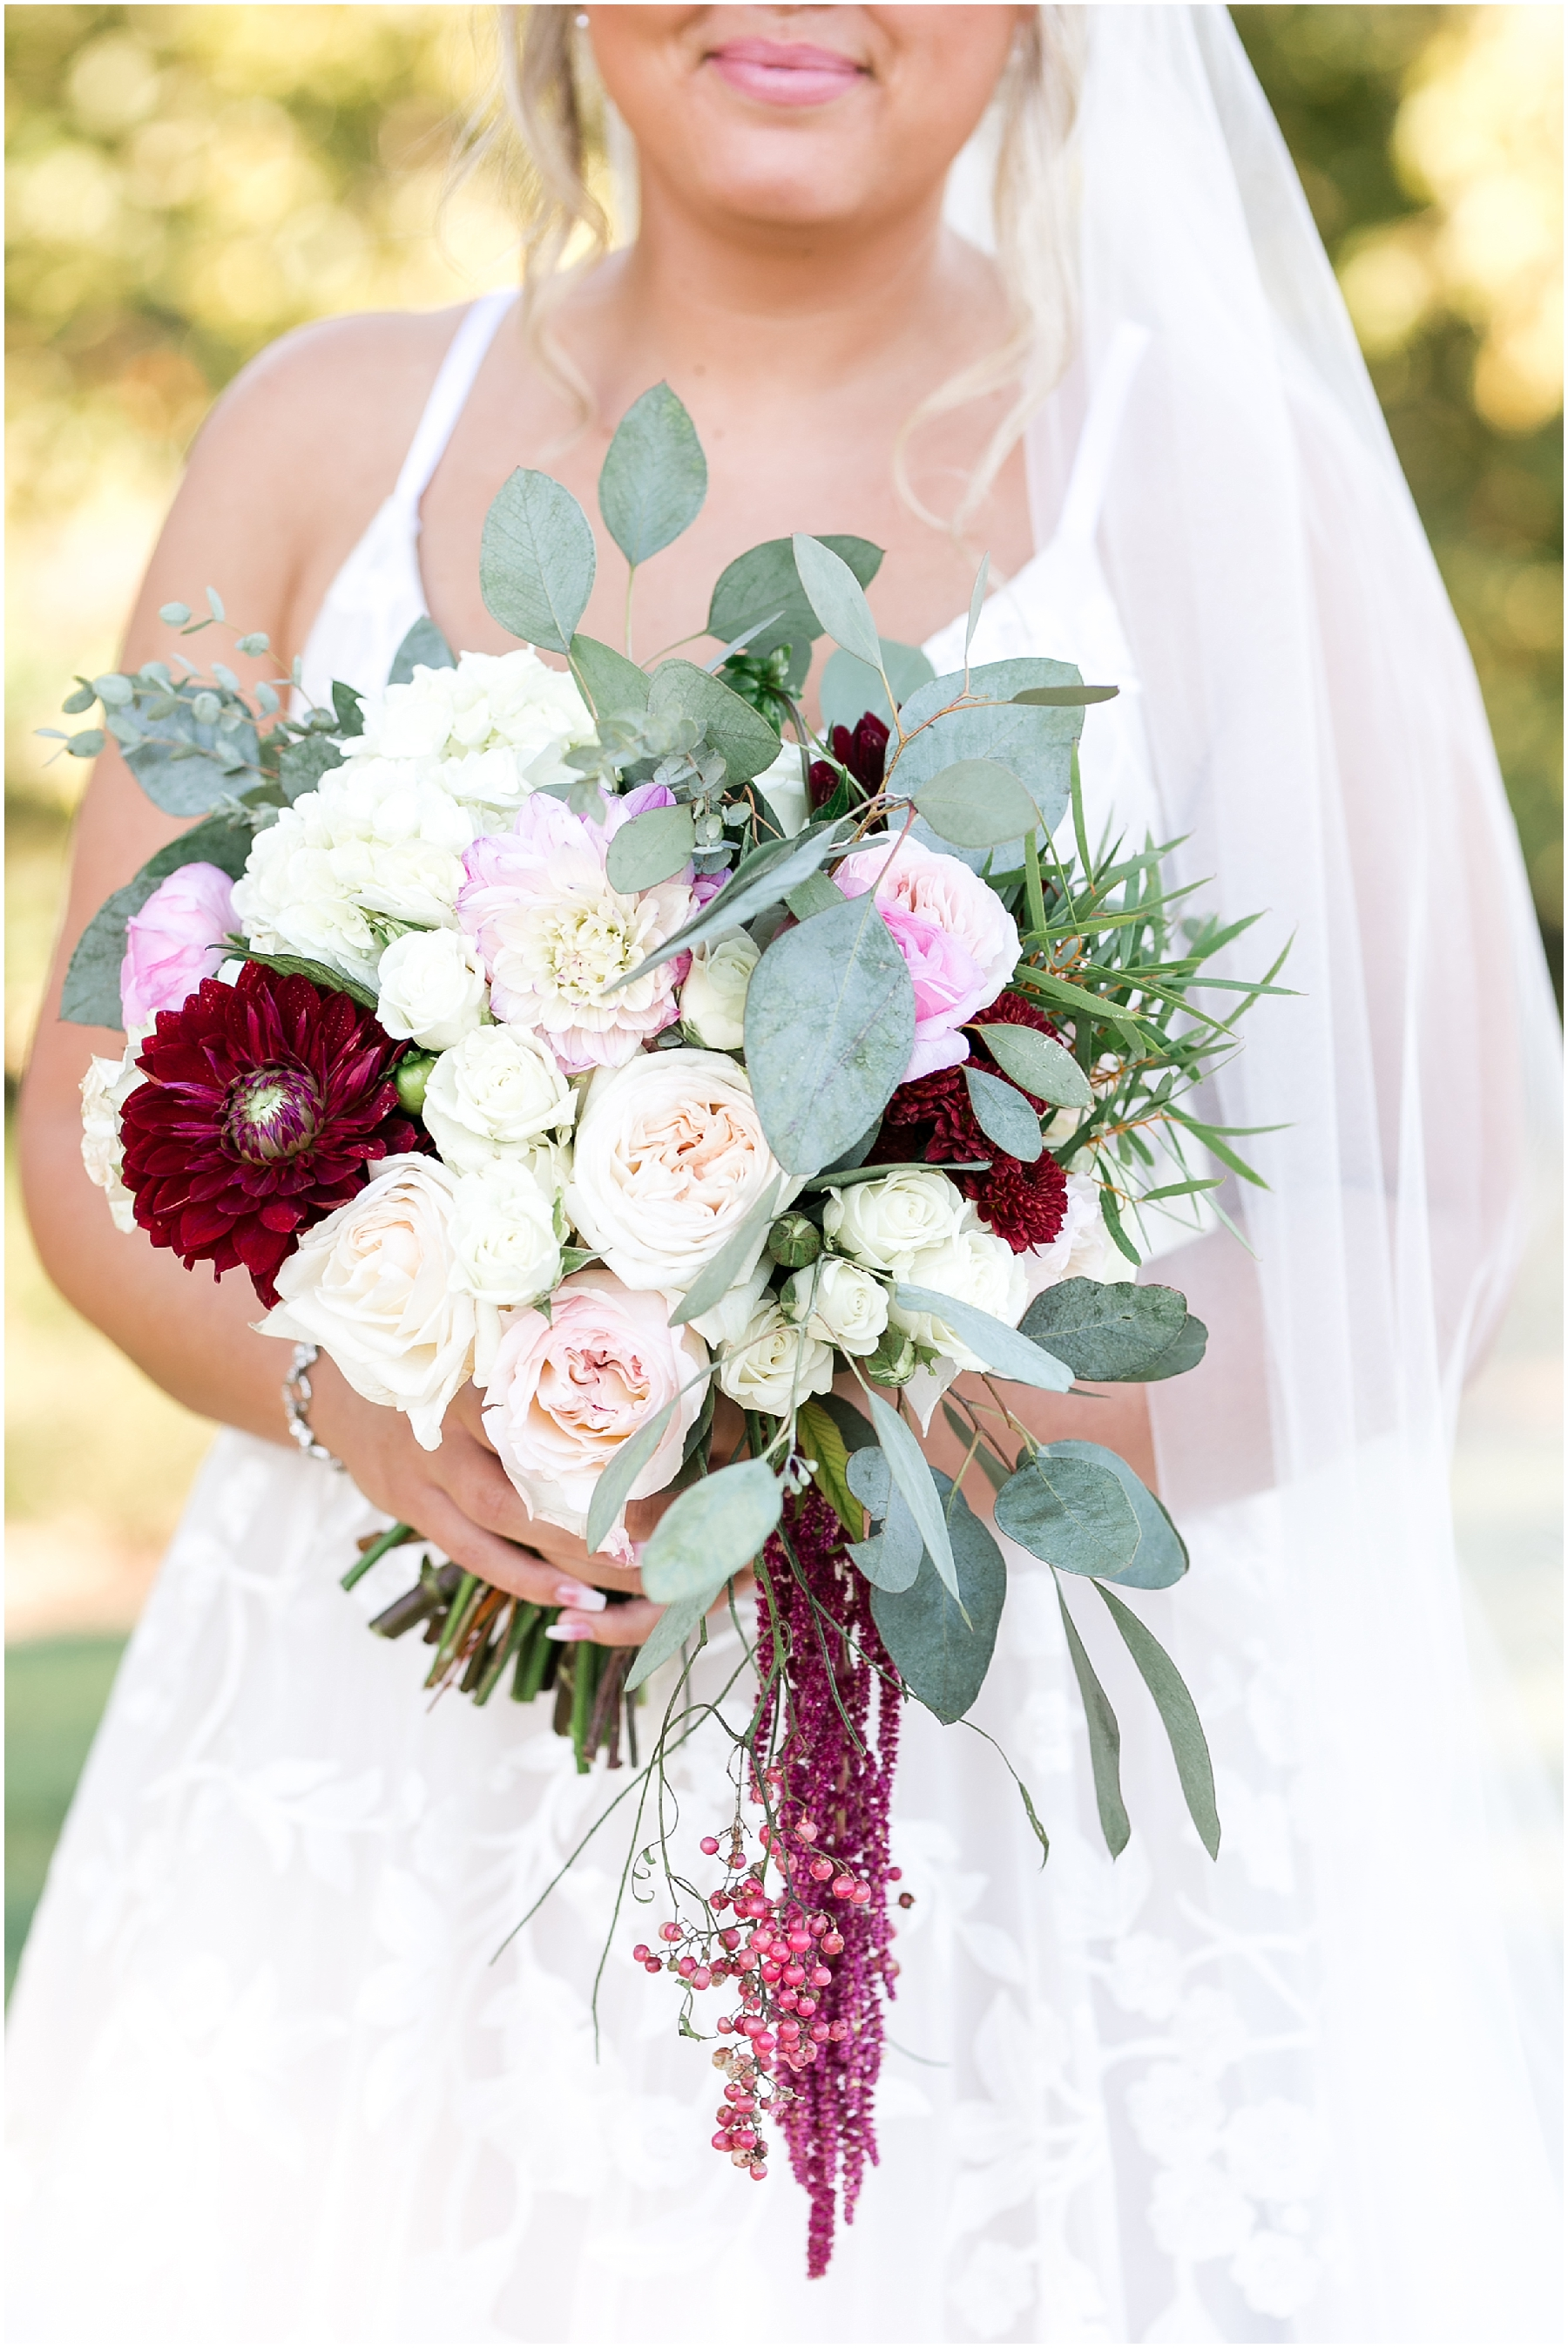 bridal portraits at norfolk botanical gardens wedding day, jessica ryan photography, fluttering flowers, blush by hayley paige, flawless onsite, blushtones, jessica ryan photography